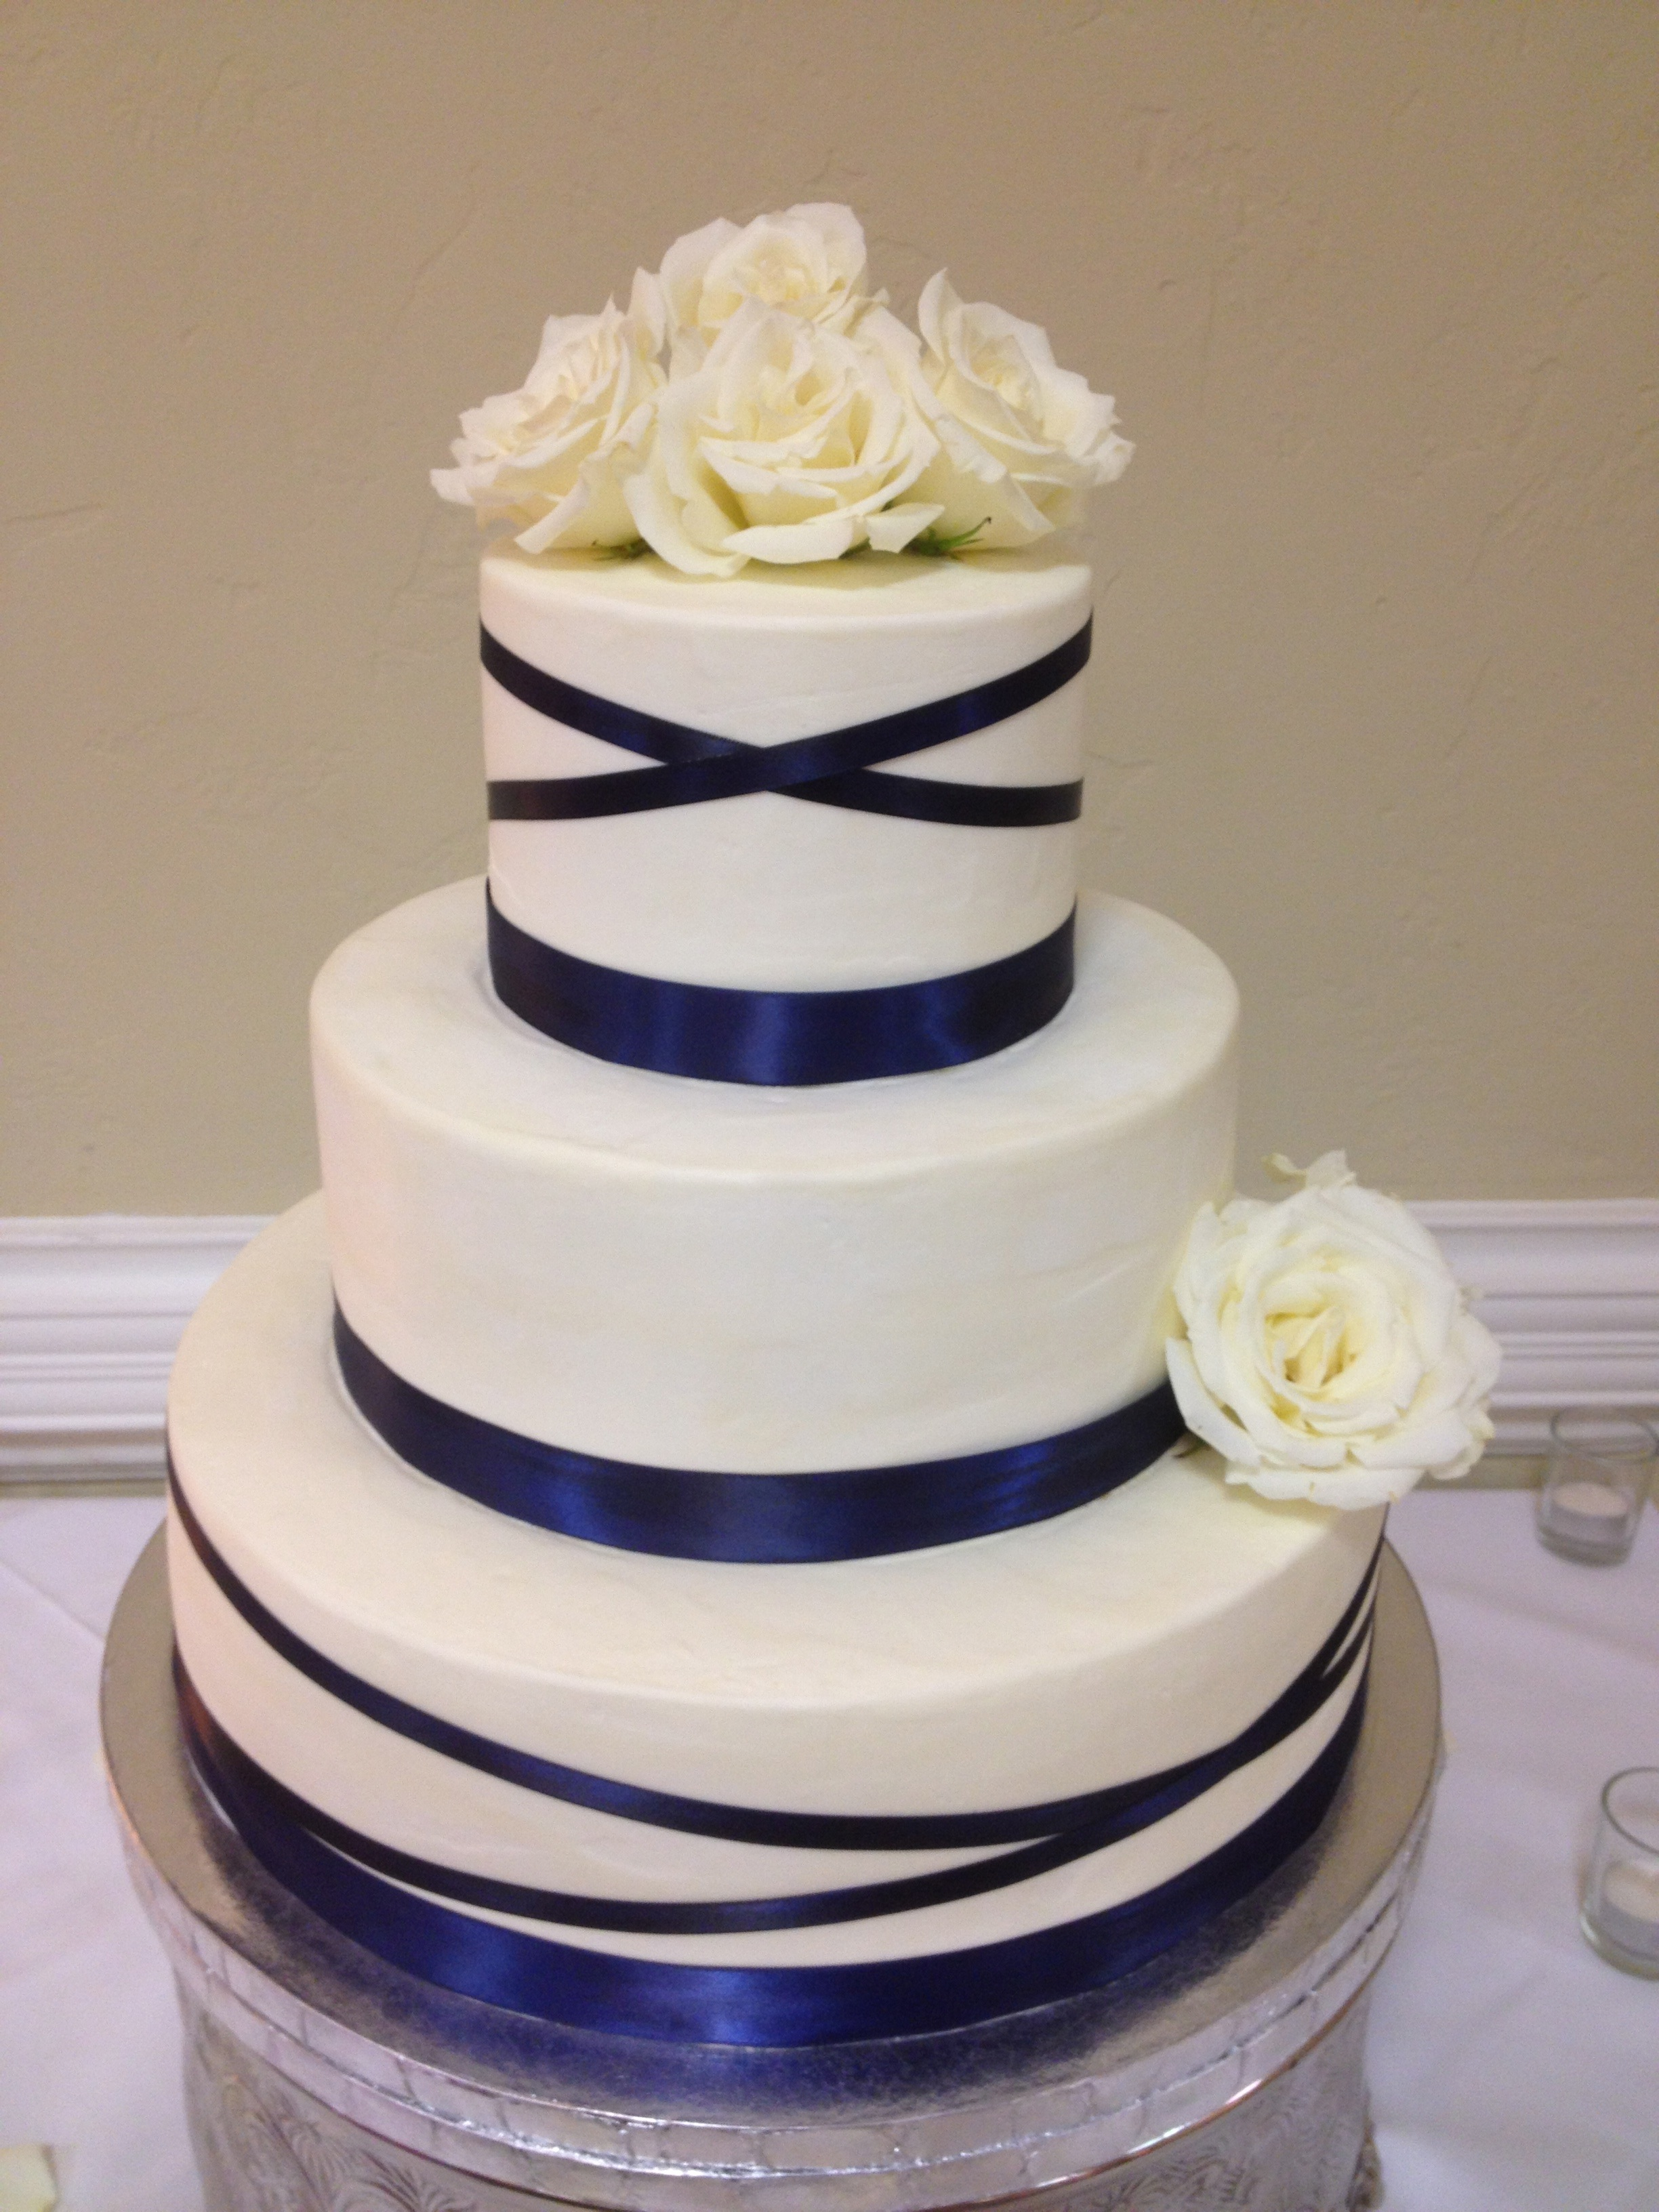 12 navy blue with pink flowers cakes photo navy blue wedding cake navy blue wedding cake flowers izmirmasajfo Images